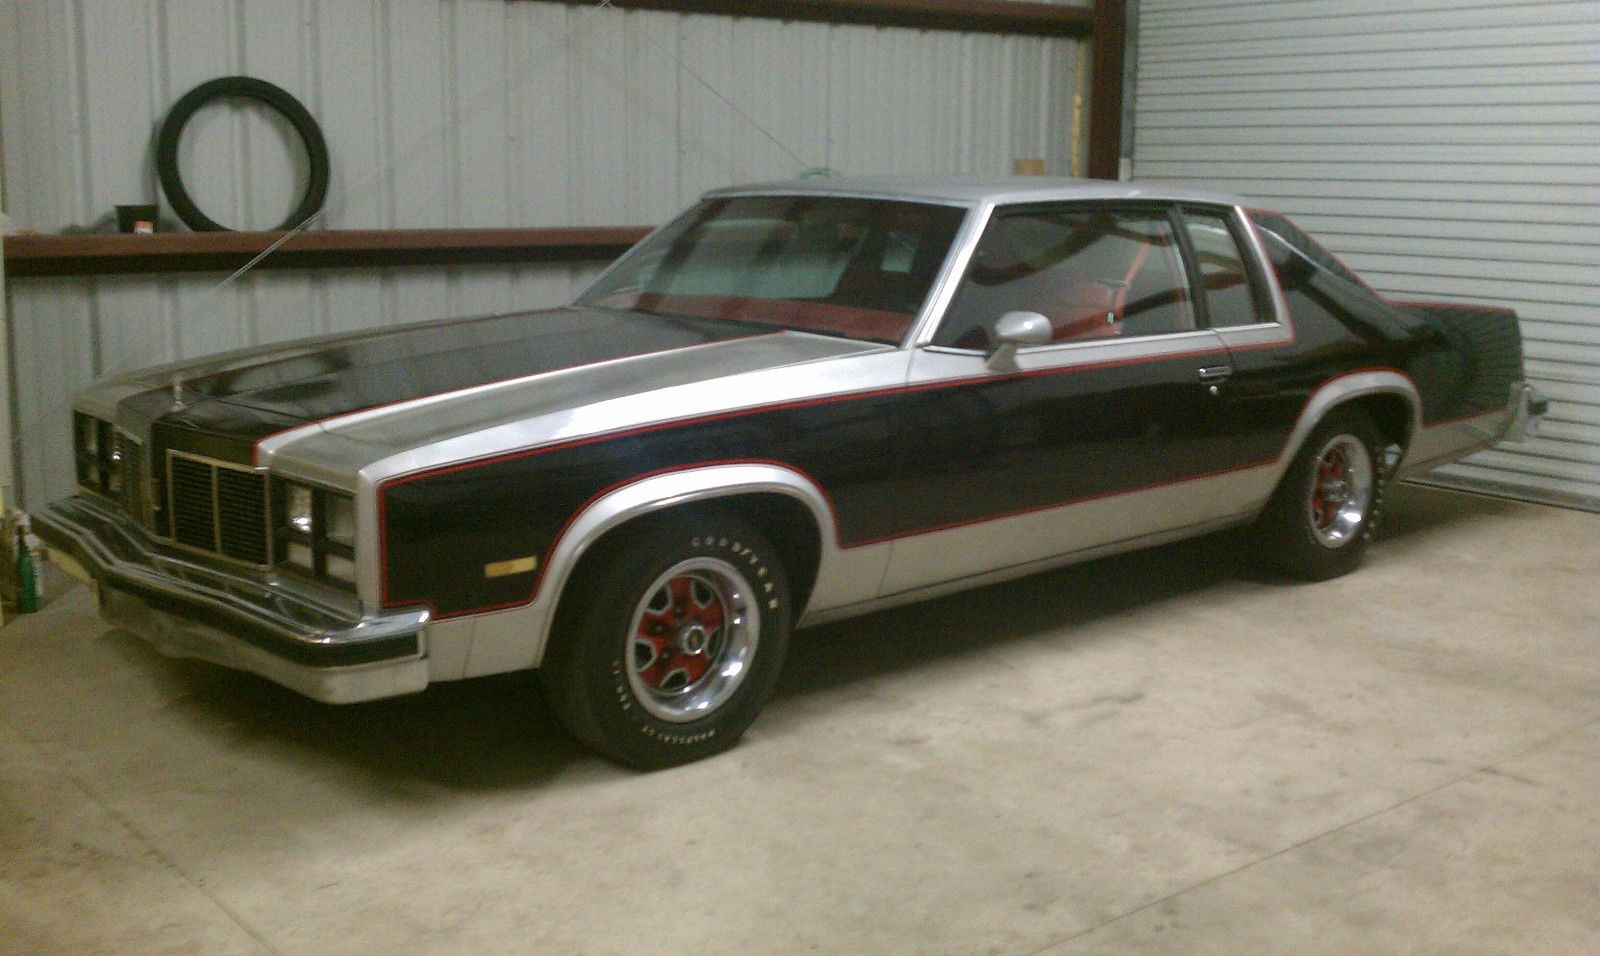 Nicely Kept! 1977 Oldsmobile Pace Car Replica